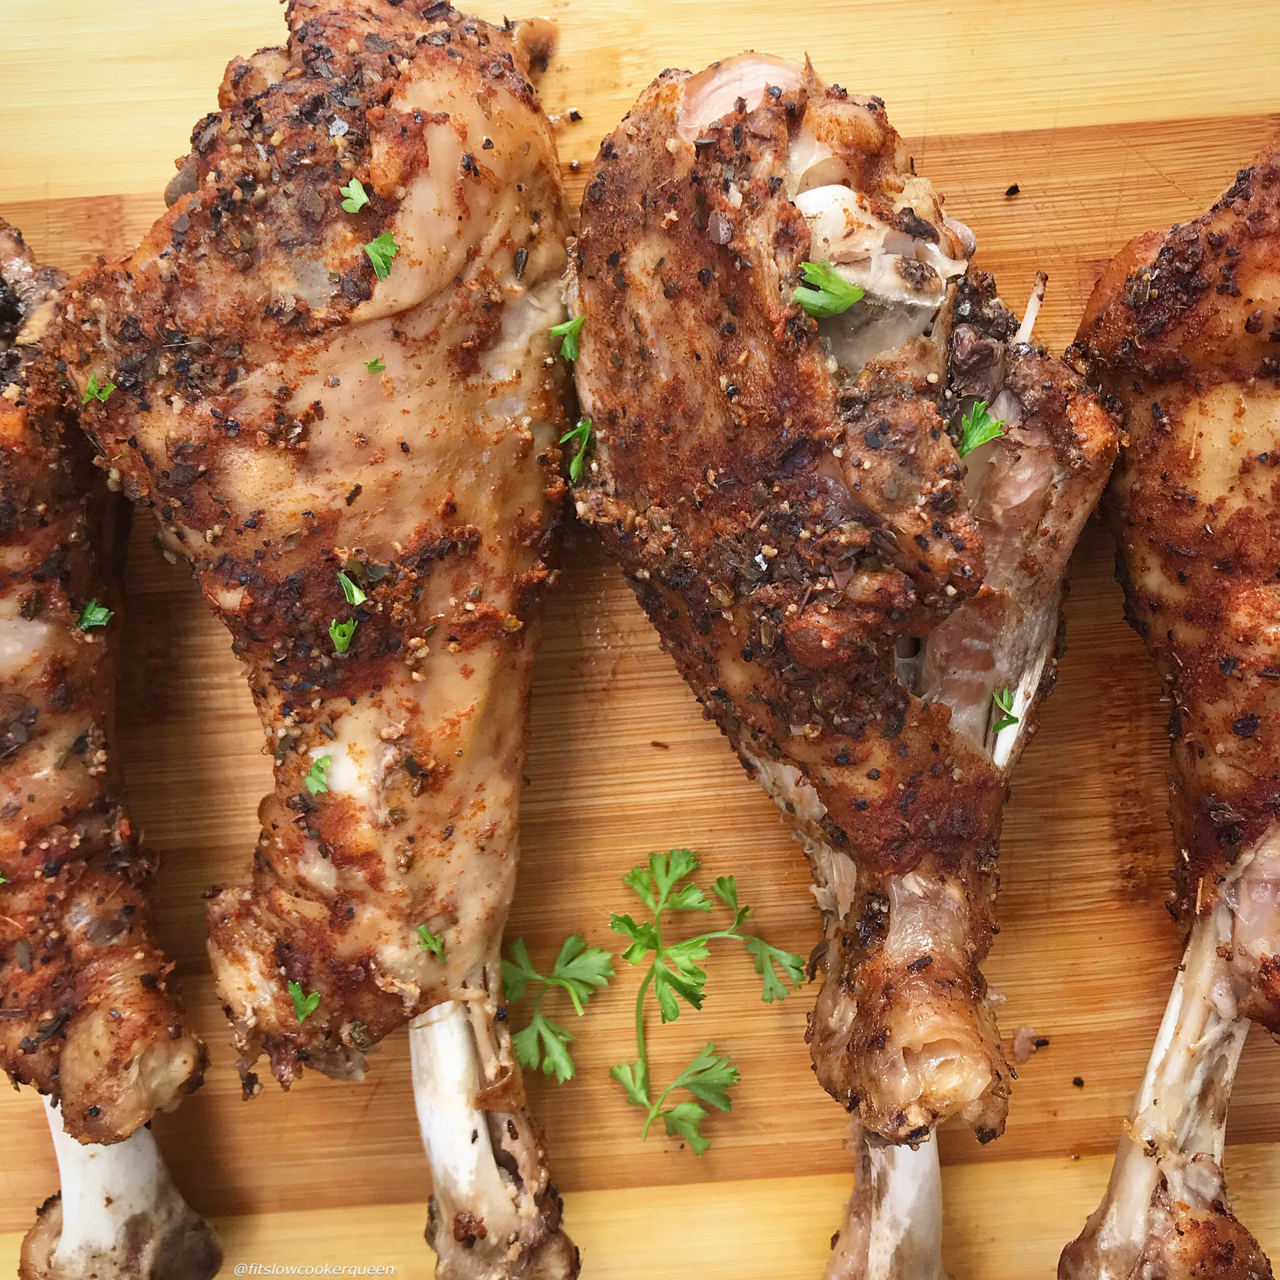 It doesn't have to be Thanksgiving to appreciate this paleo, whole30, and low-carb turkey legs recipe. Made in the slow cooker so it's super easy too.